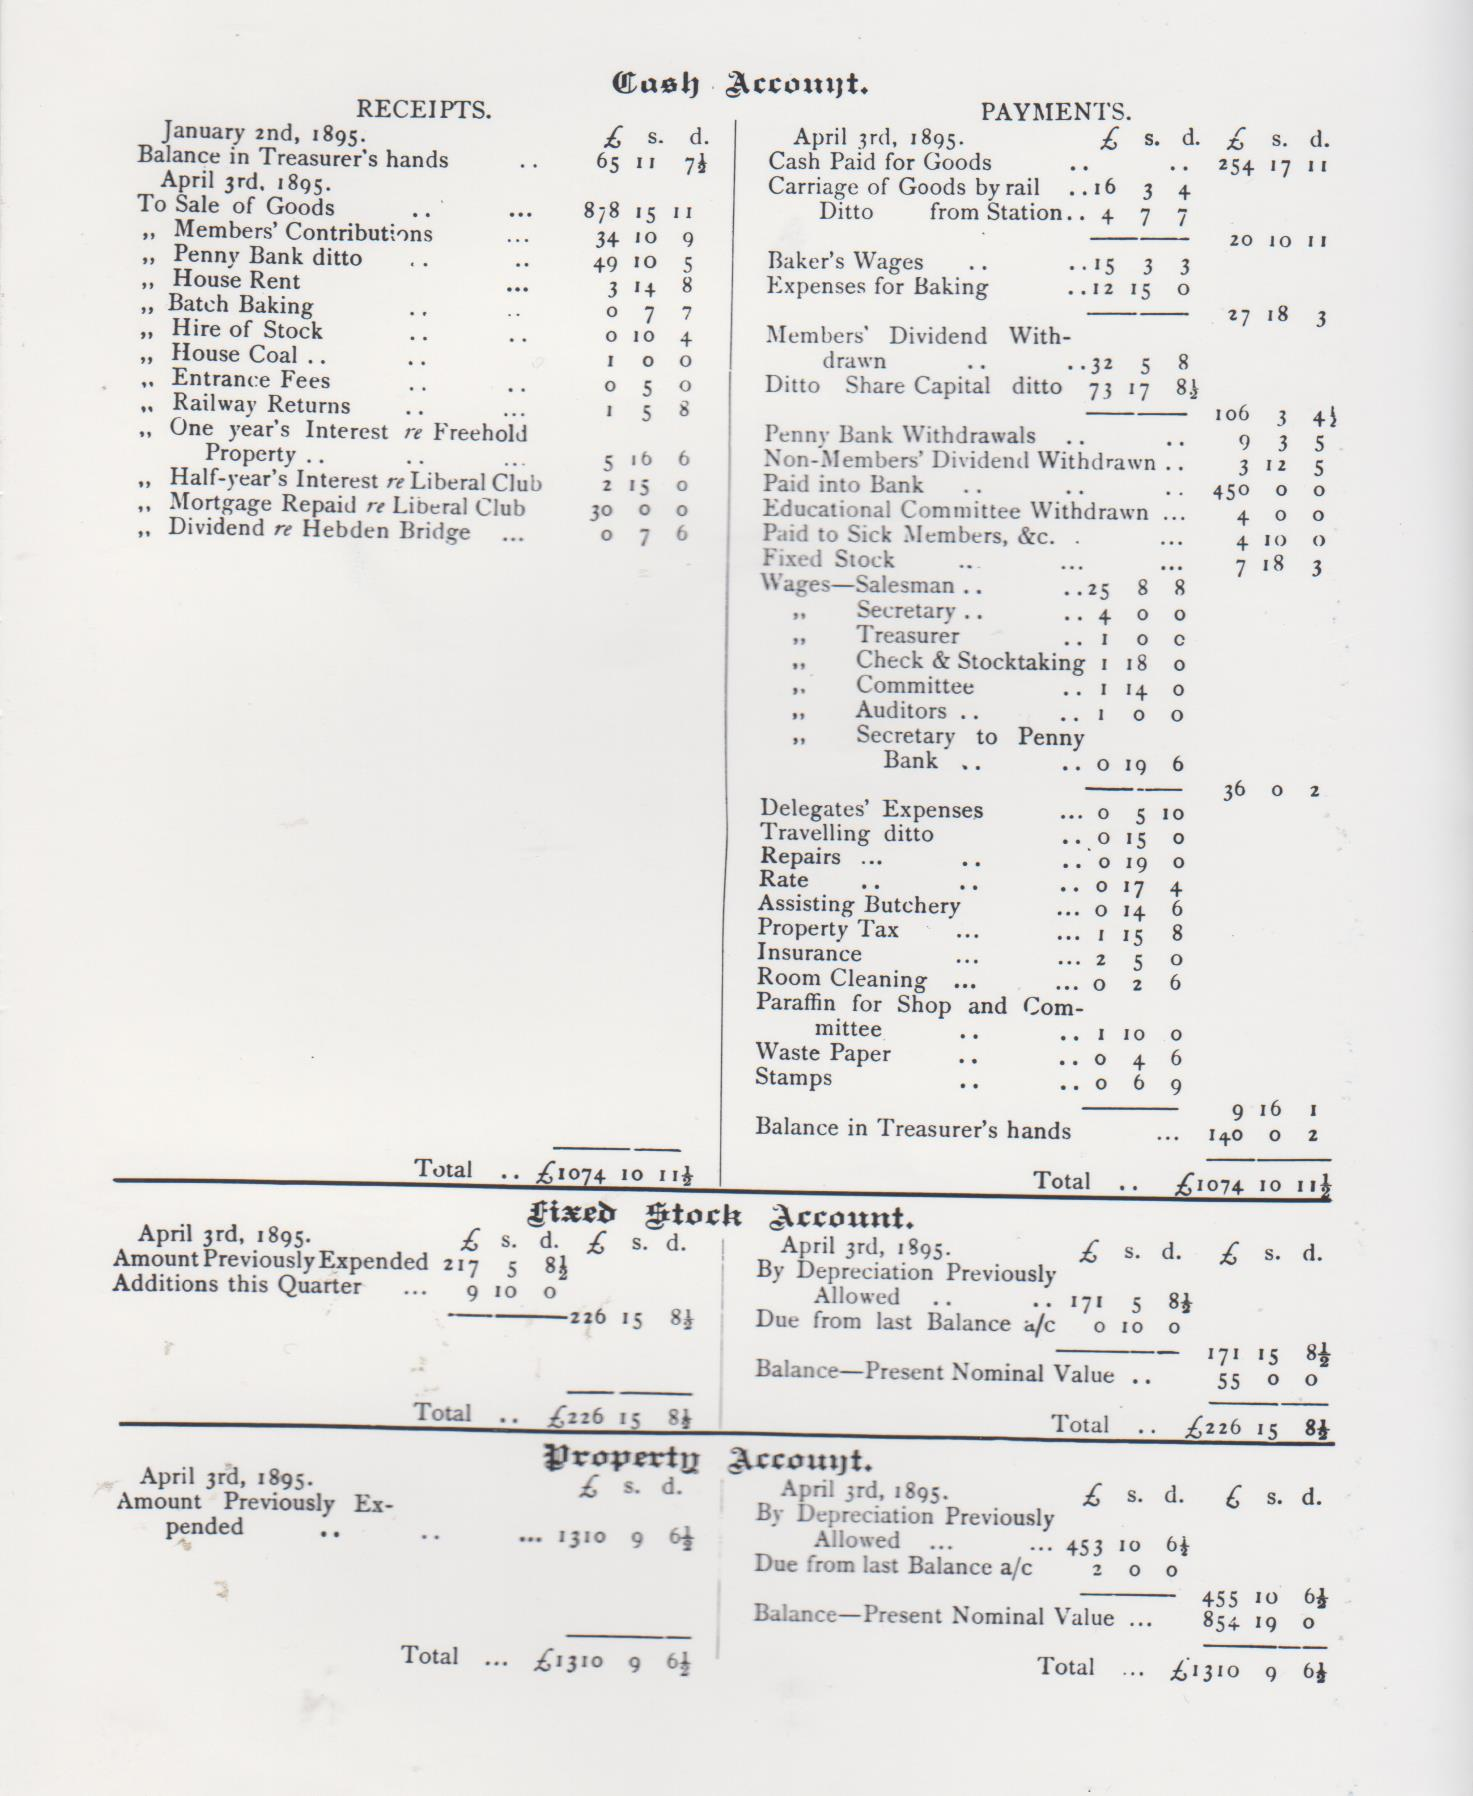 co op balance sheet 1895 3 of 4 001